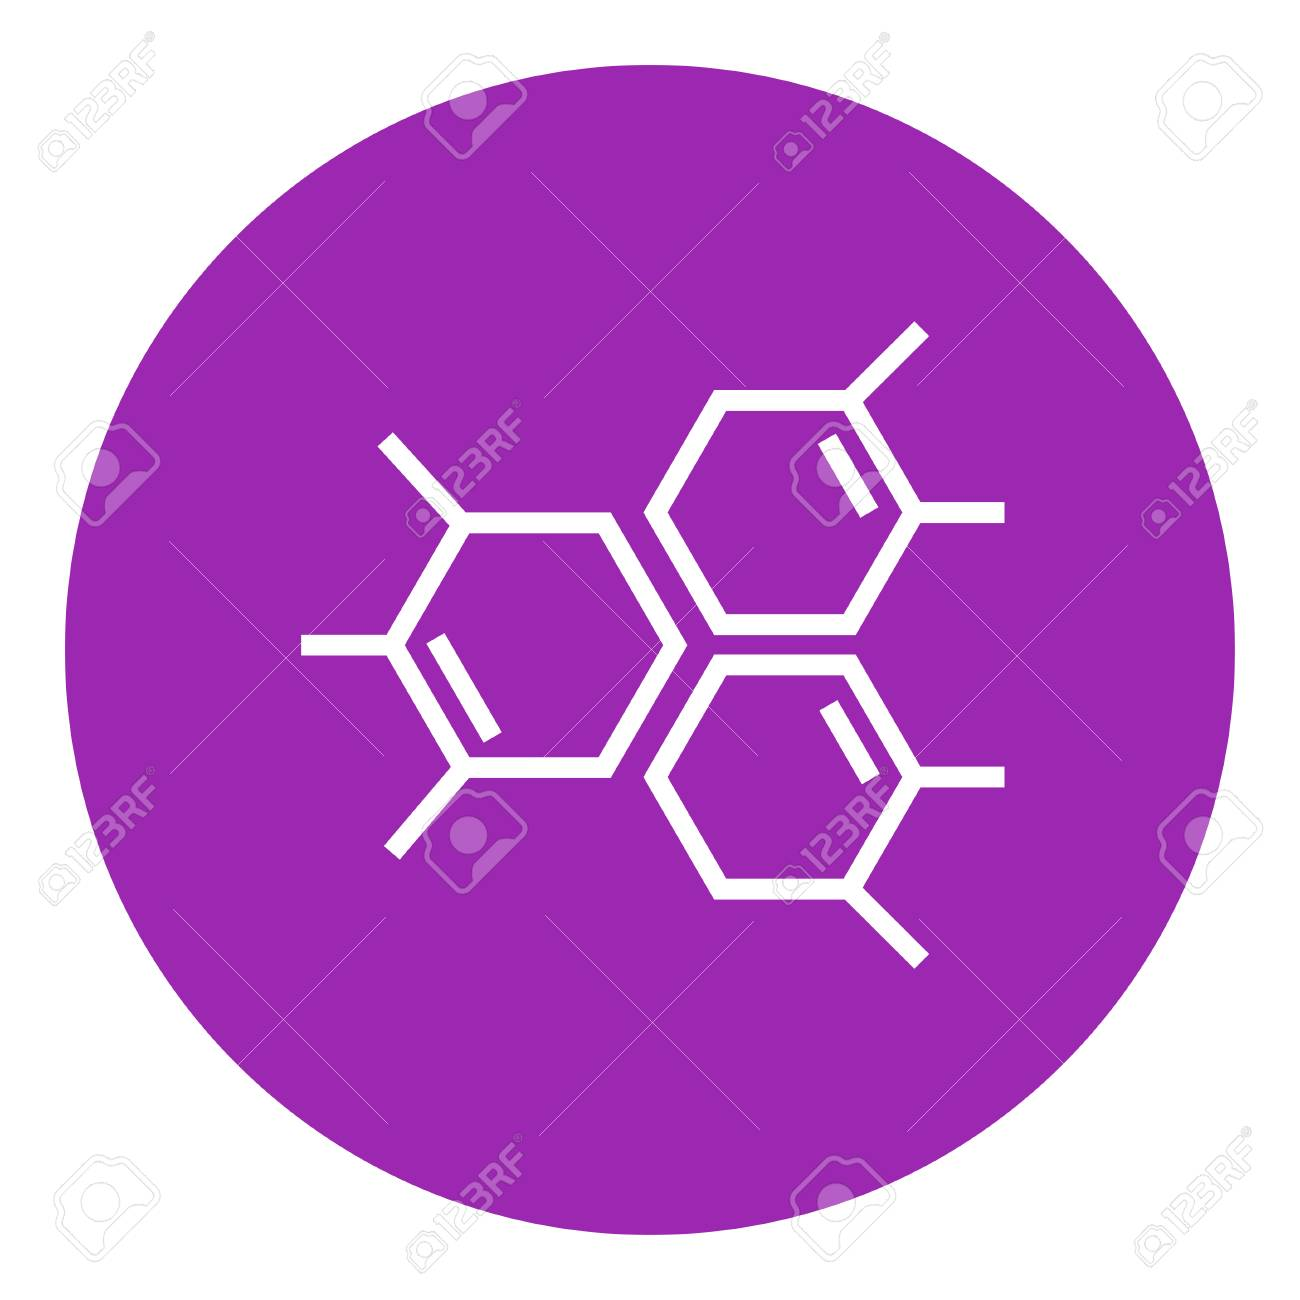 Chemical Formula Thick Line Icon With Pointed Corners And Edges